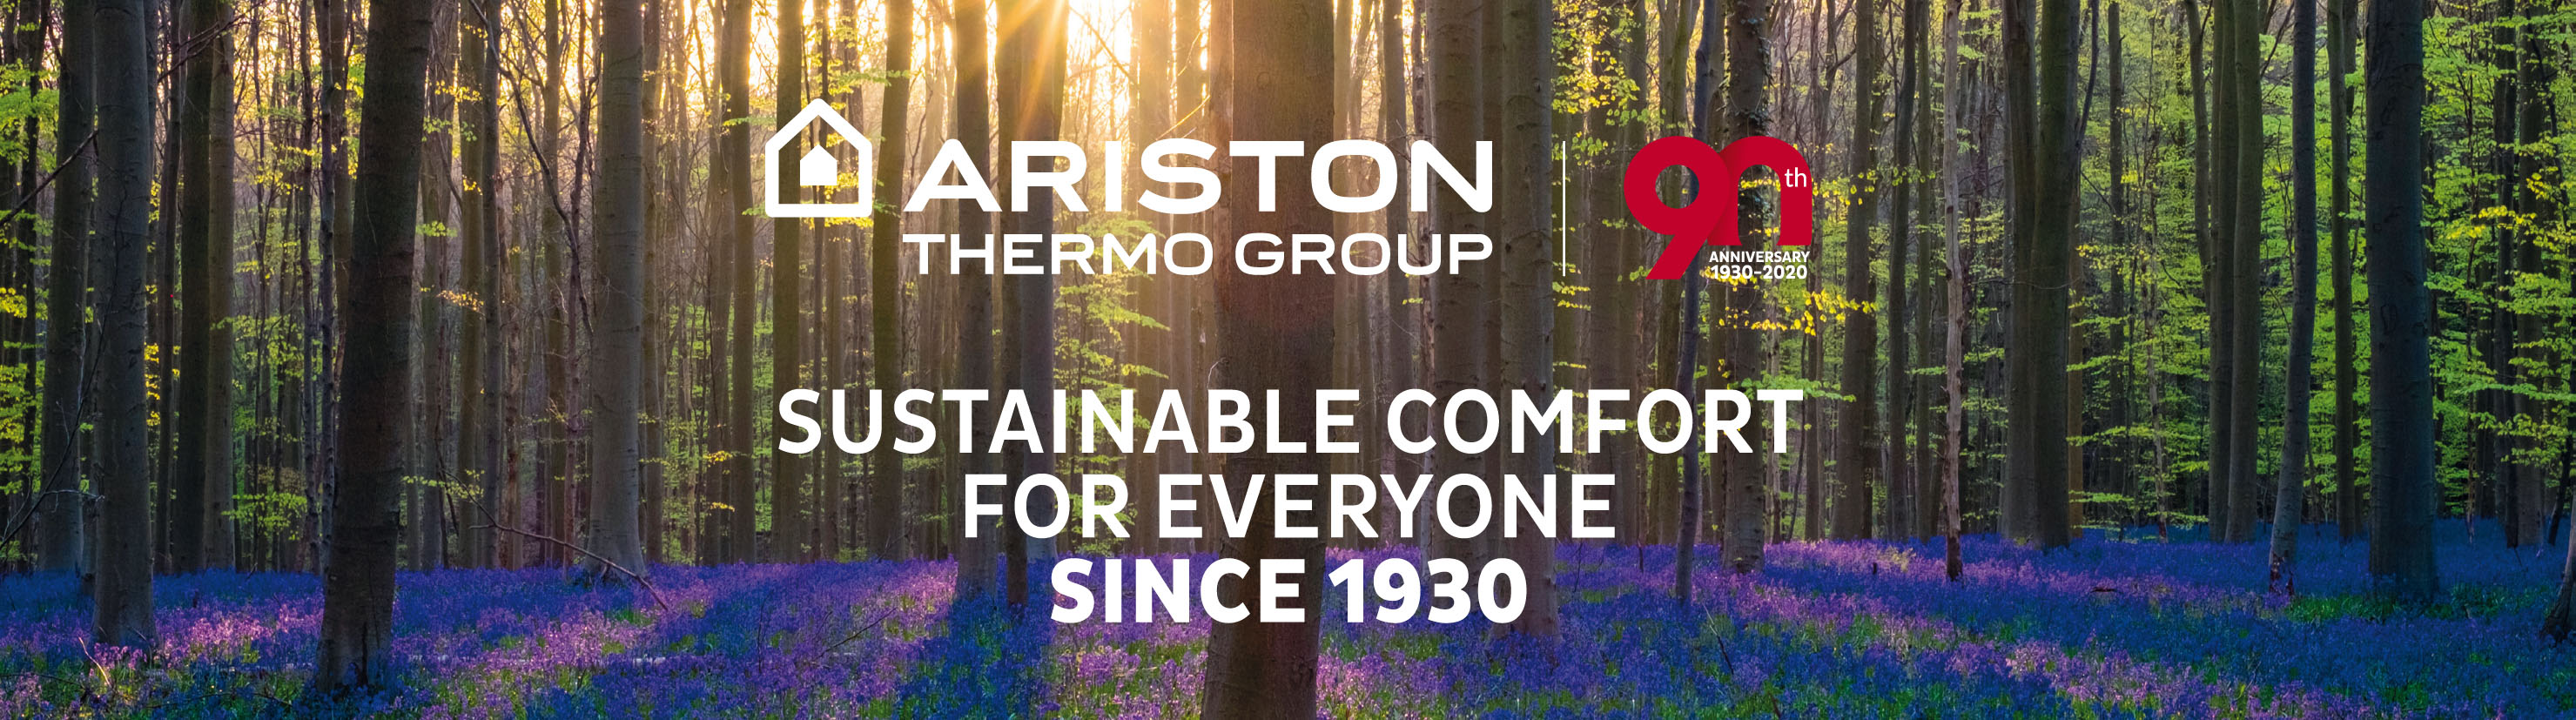 Elco Burners Ariston Thermo Group 90th Anniversary